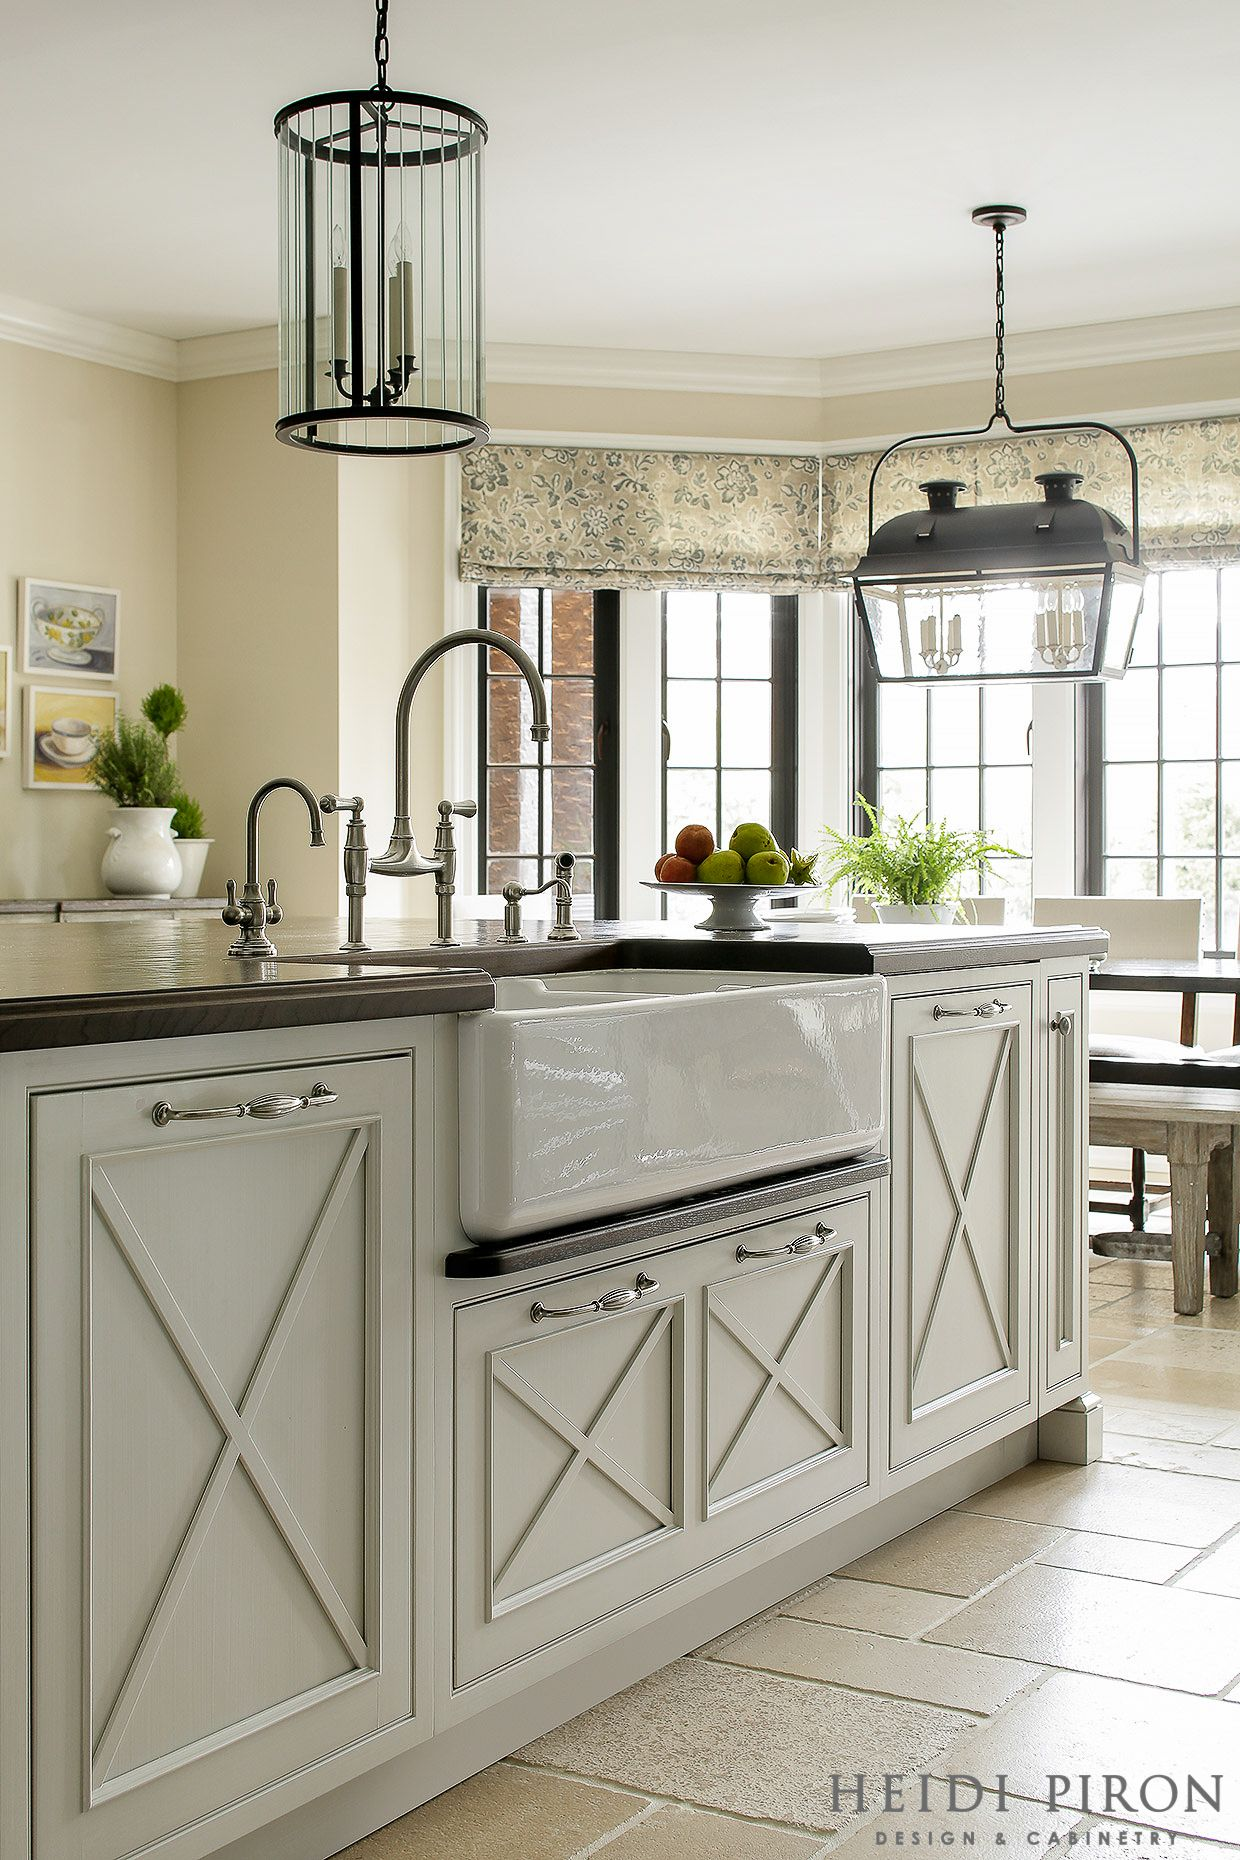 Award Winning Kitchen Designer, Heidi Piron, Creates Hand Crafted Kitchens  And Customized Spaces   From Traditional And Transitional To Contemporary  And ...